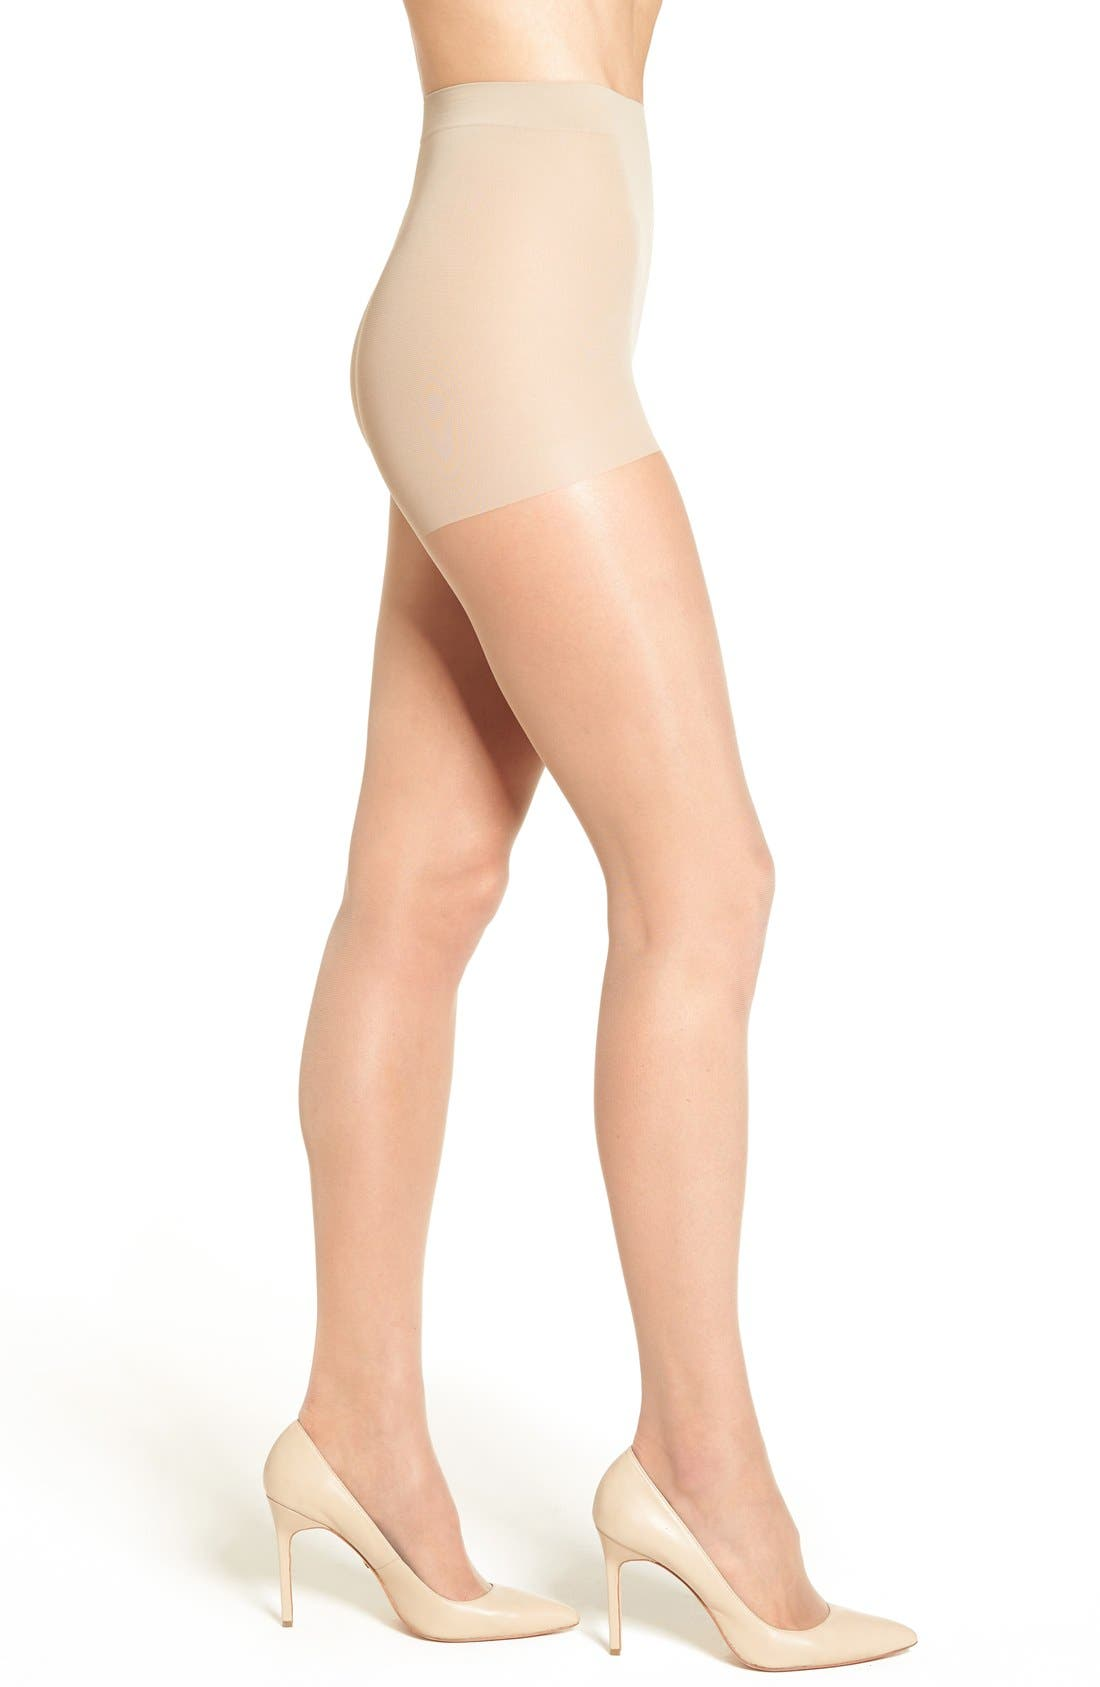 Alternate Image 1 Selected - Nordstrom Control Top Pantyhose (3 for $36)